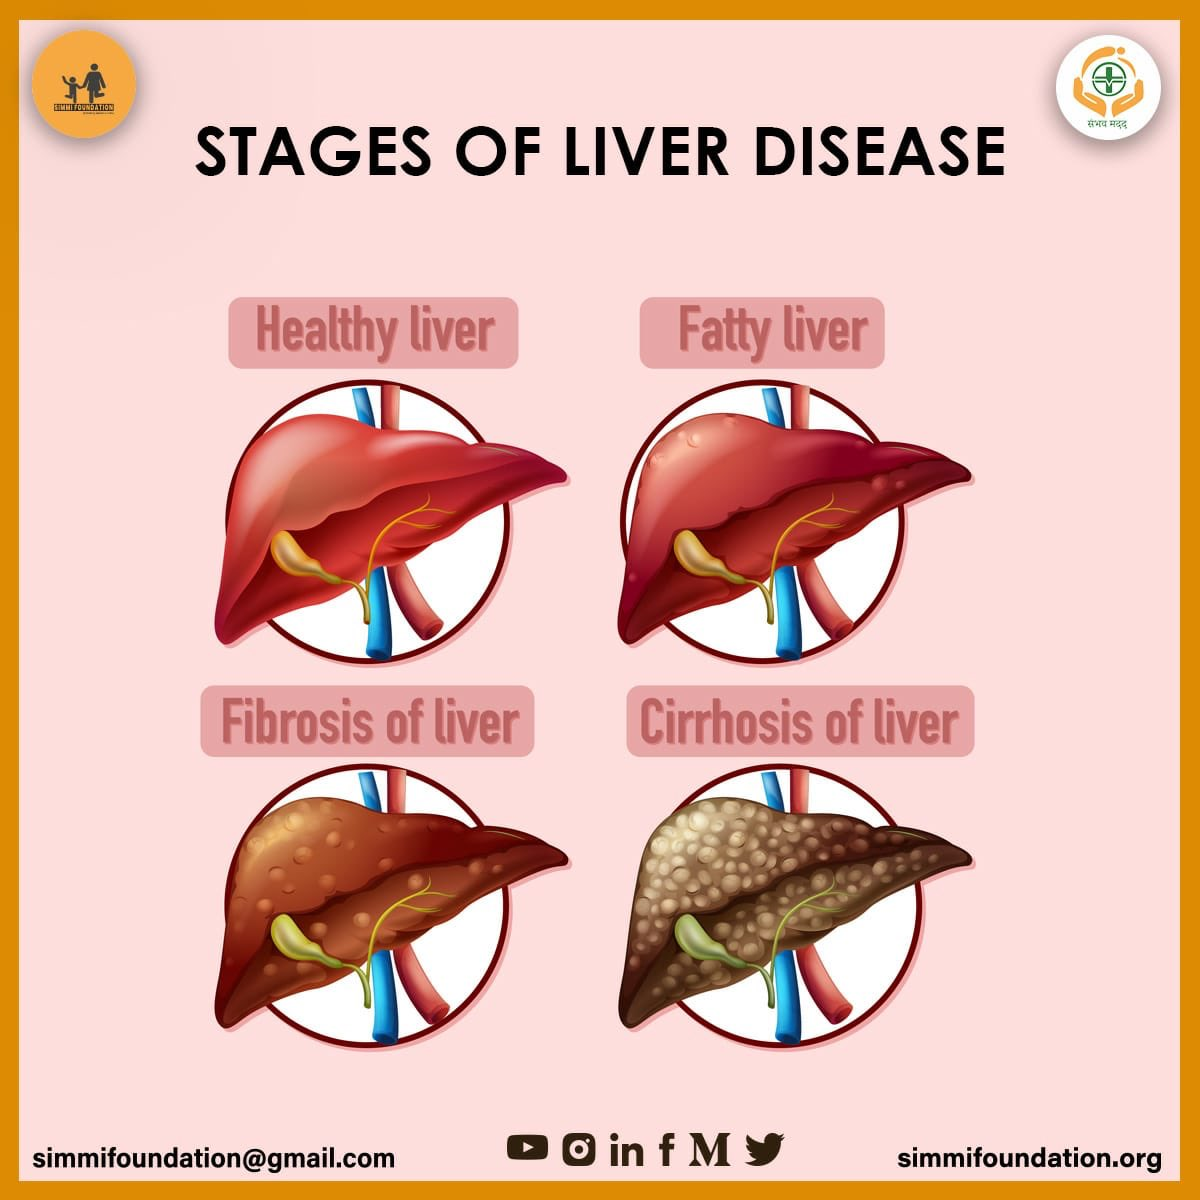 1. The first sign of liver damage is inflammation 2. Fibrosis is the start of liver scarring 3. More severe scarring leads to cirrhosis 4. Liver failure  #simmifoundation #sambhavmadad #liver #disease #treatment #stages #medication #cirrhosis https://t.co/hrdbyP8tgQ